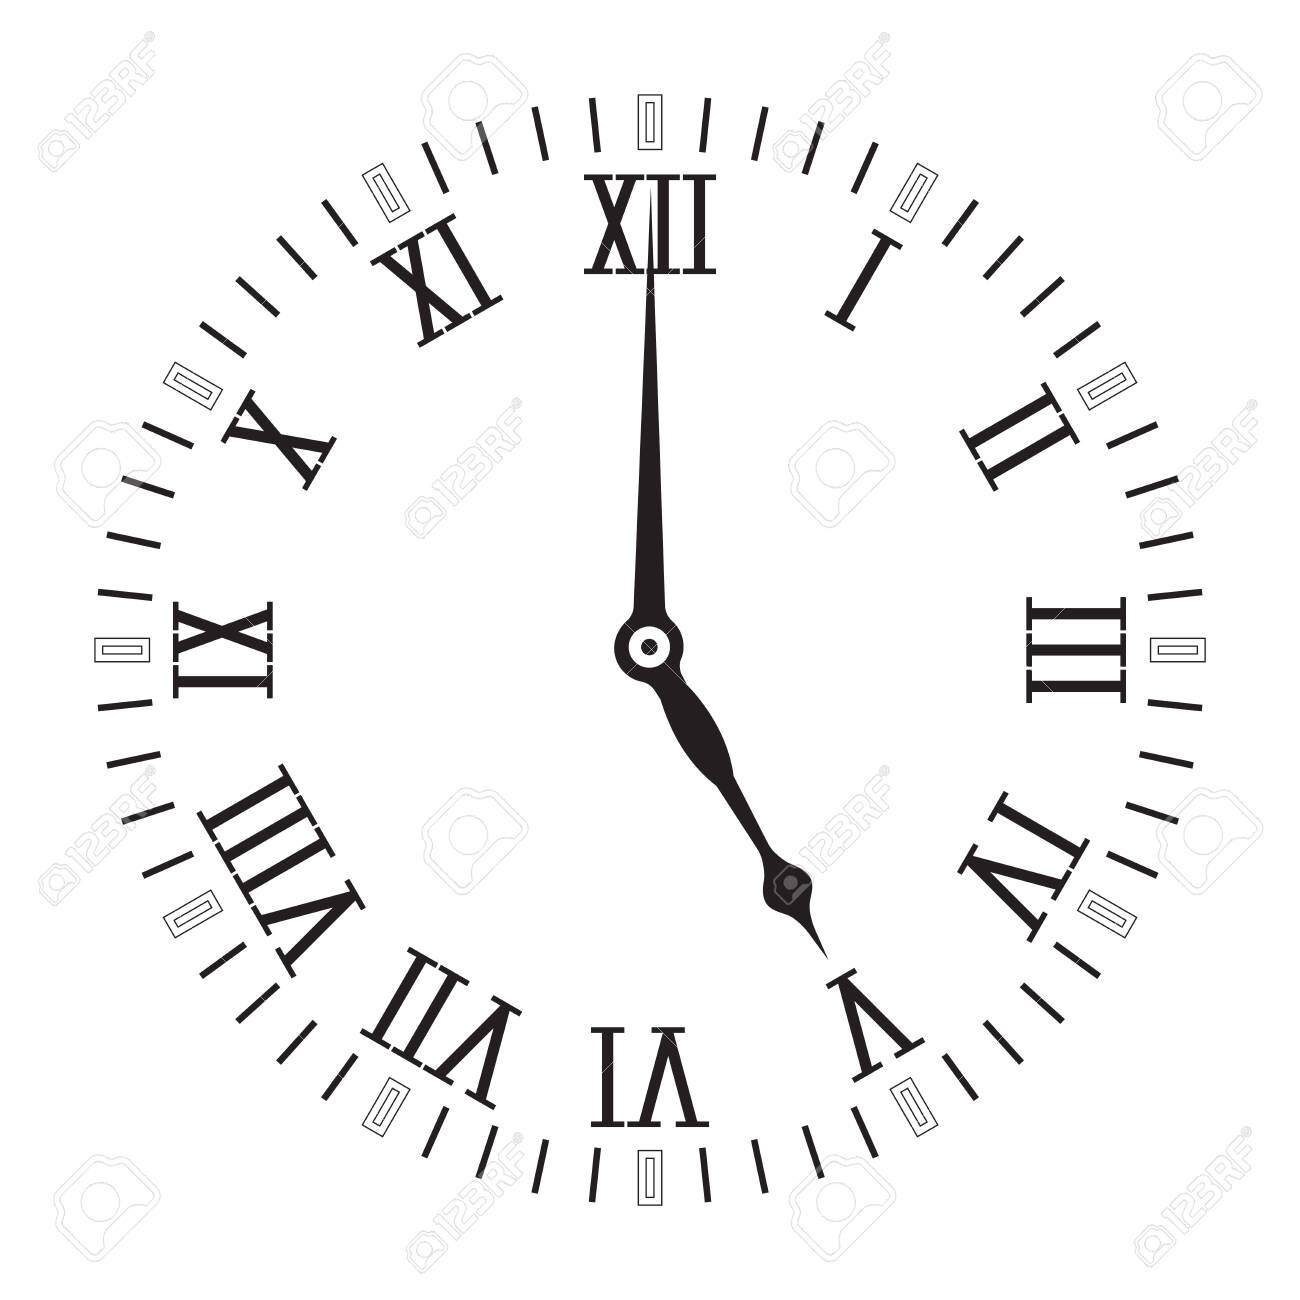 Clock scale with roman numerals. Five o'clock. Vector illustration isolated on white background - 133632066